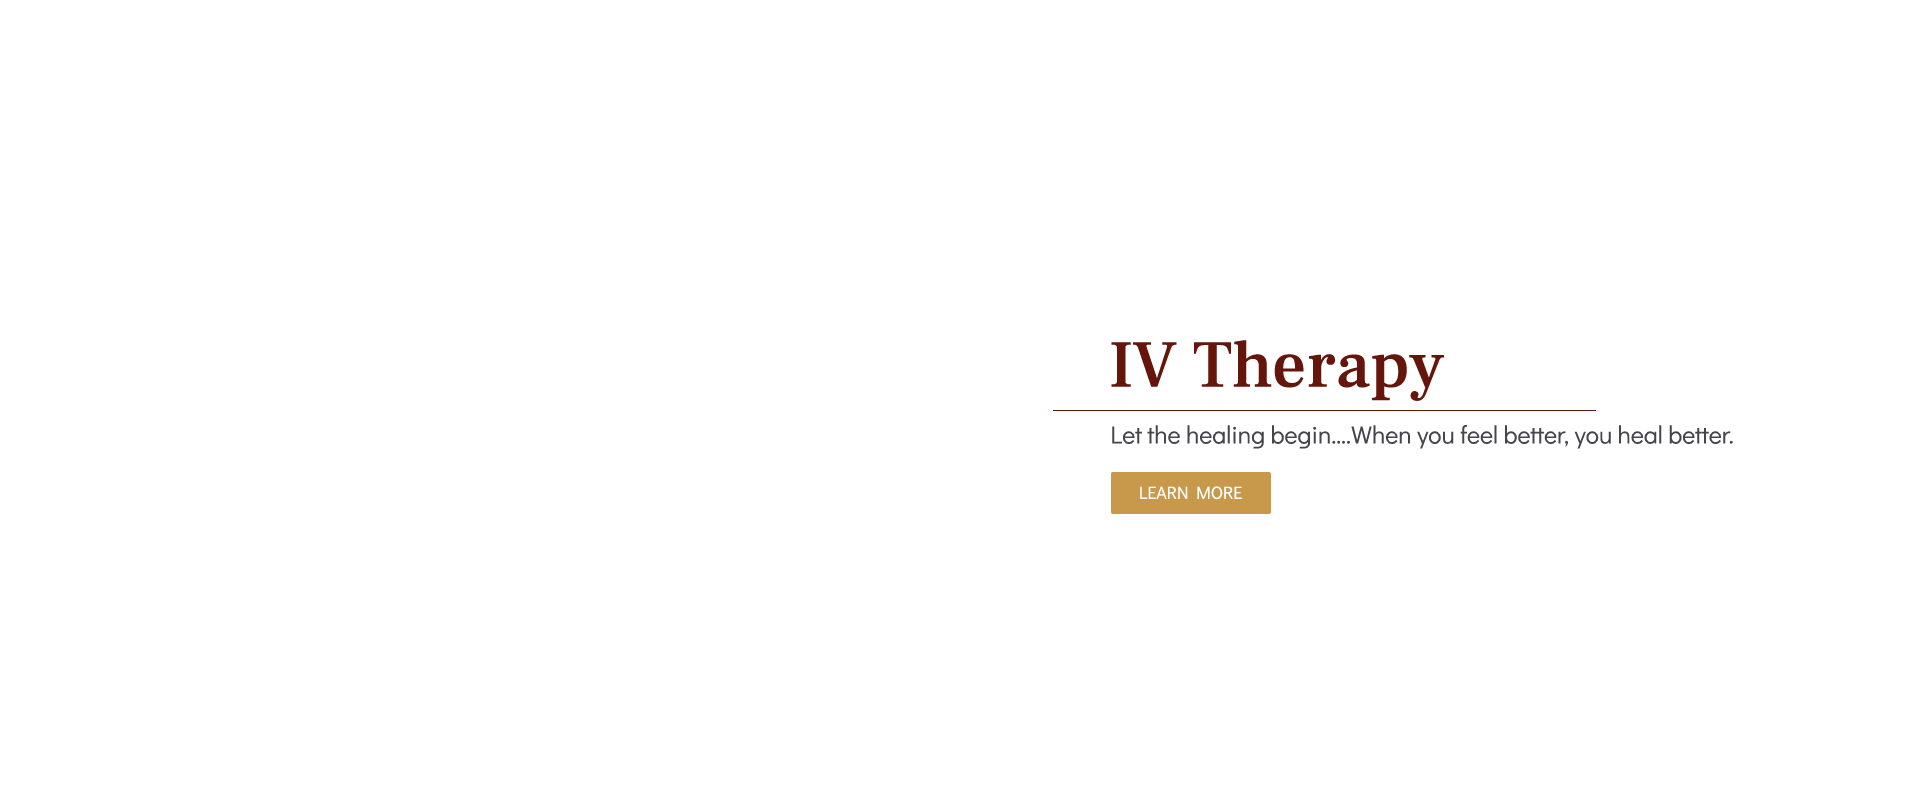 IV Therapy, Learn about IV Therapy and Peptide Therapy in Spokane